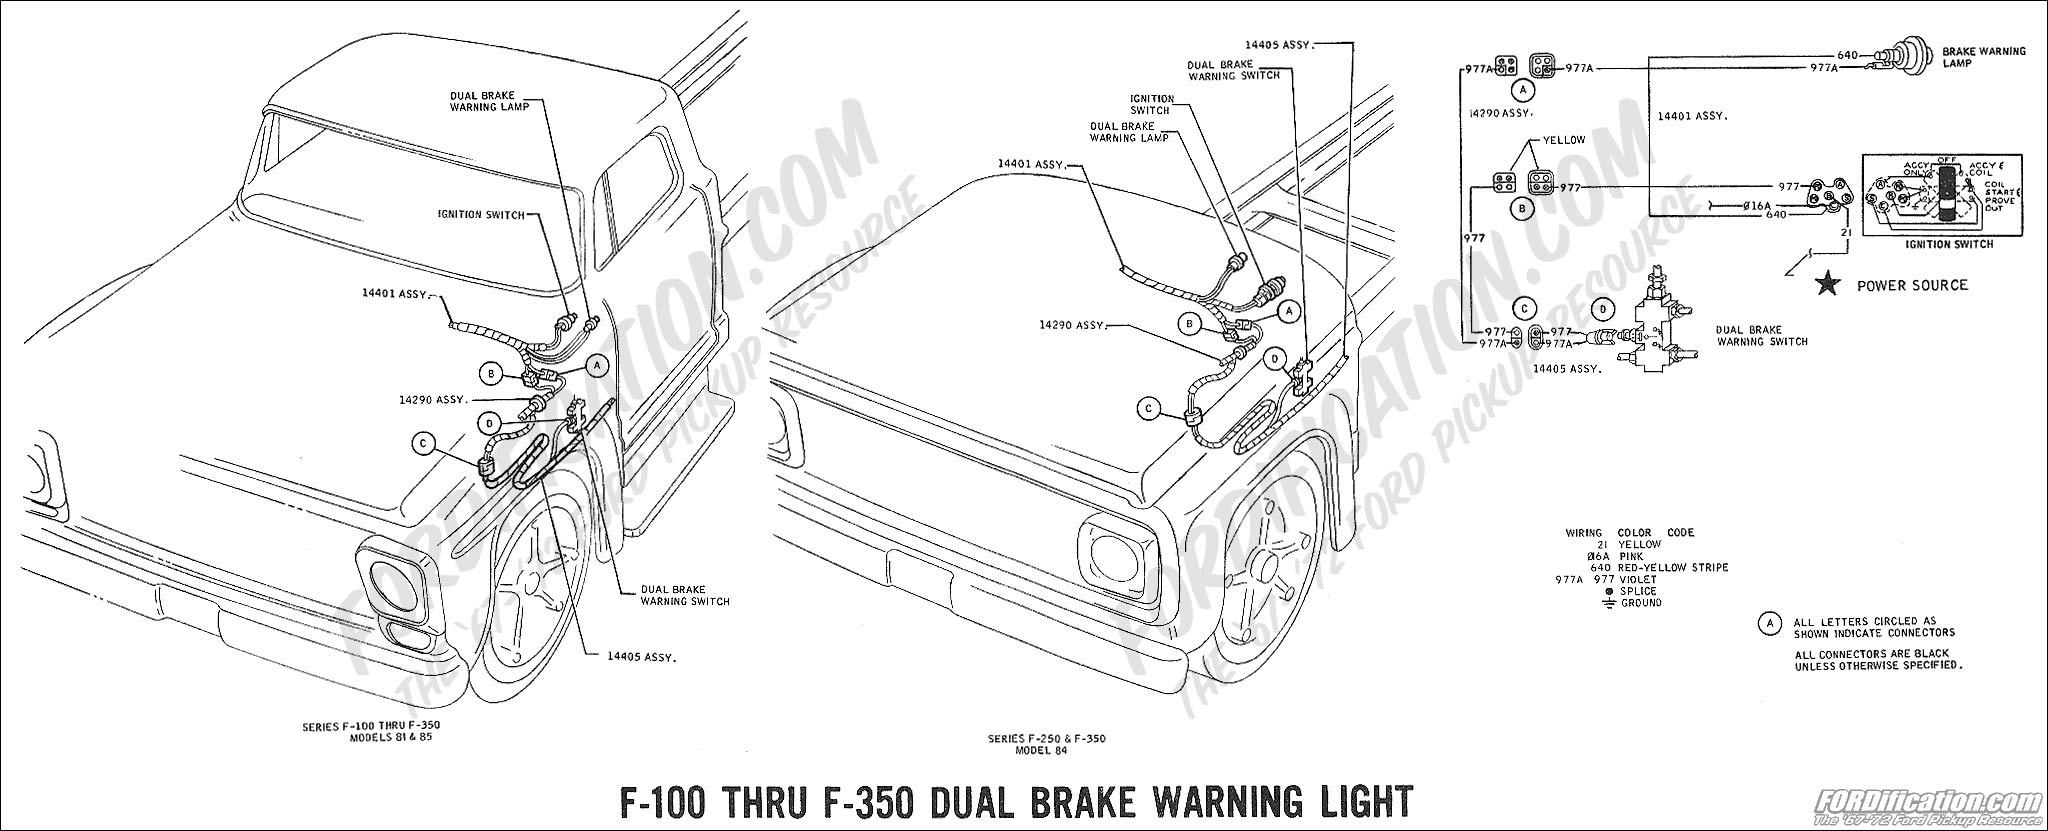 1971 ford f250 wiring diagram ford truck technical drawings and schematics section h wiring  ford truck technical drawings and